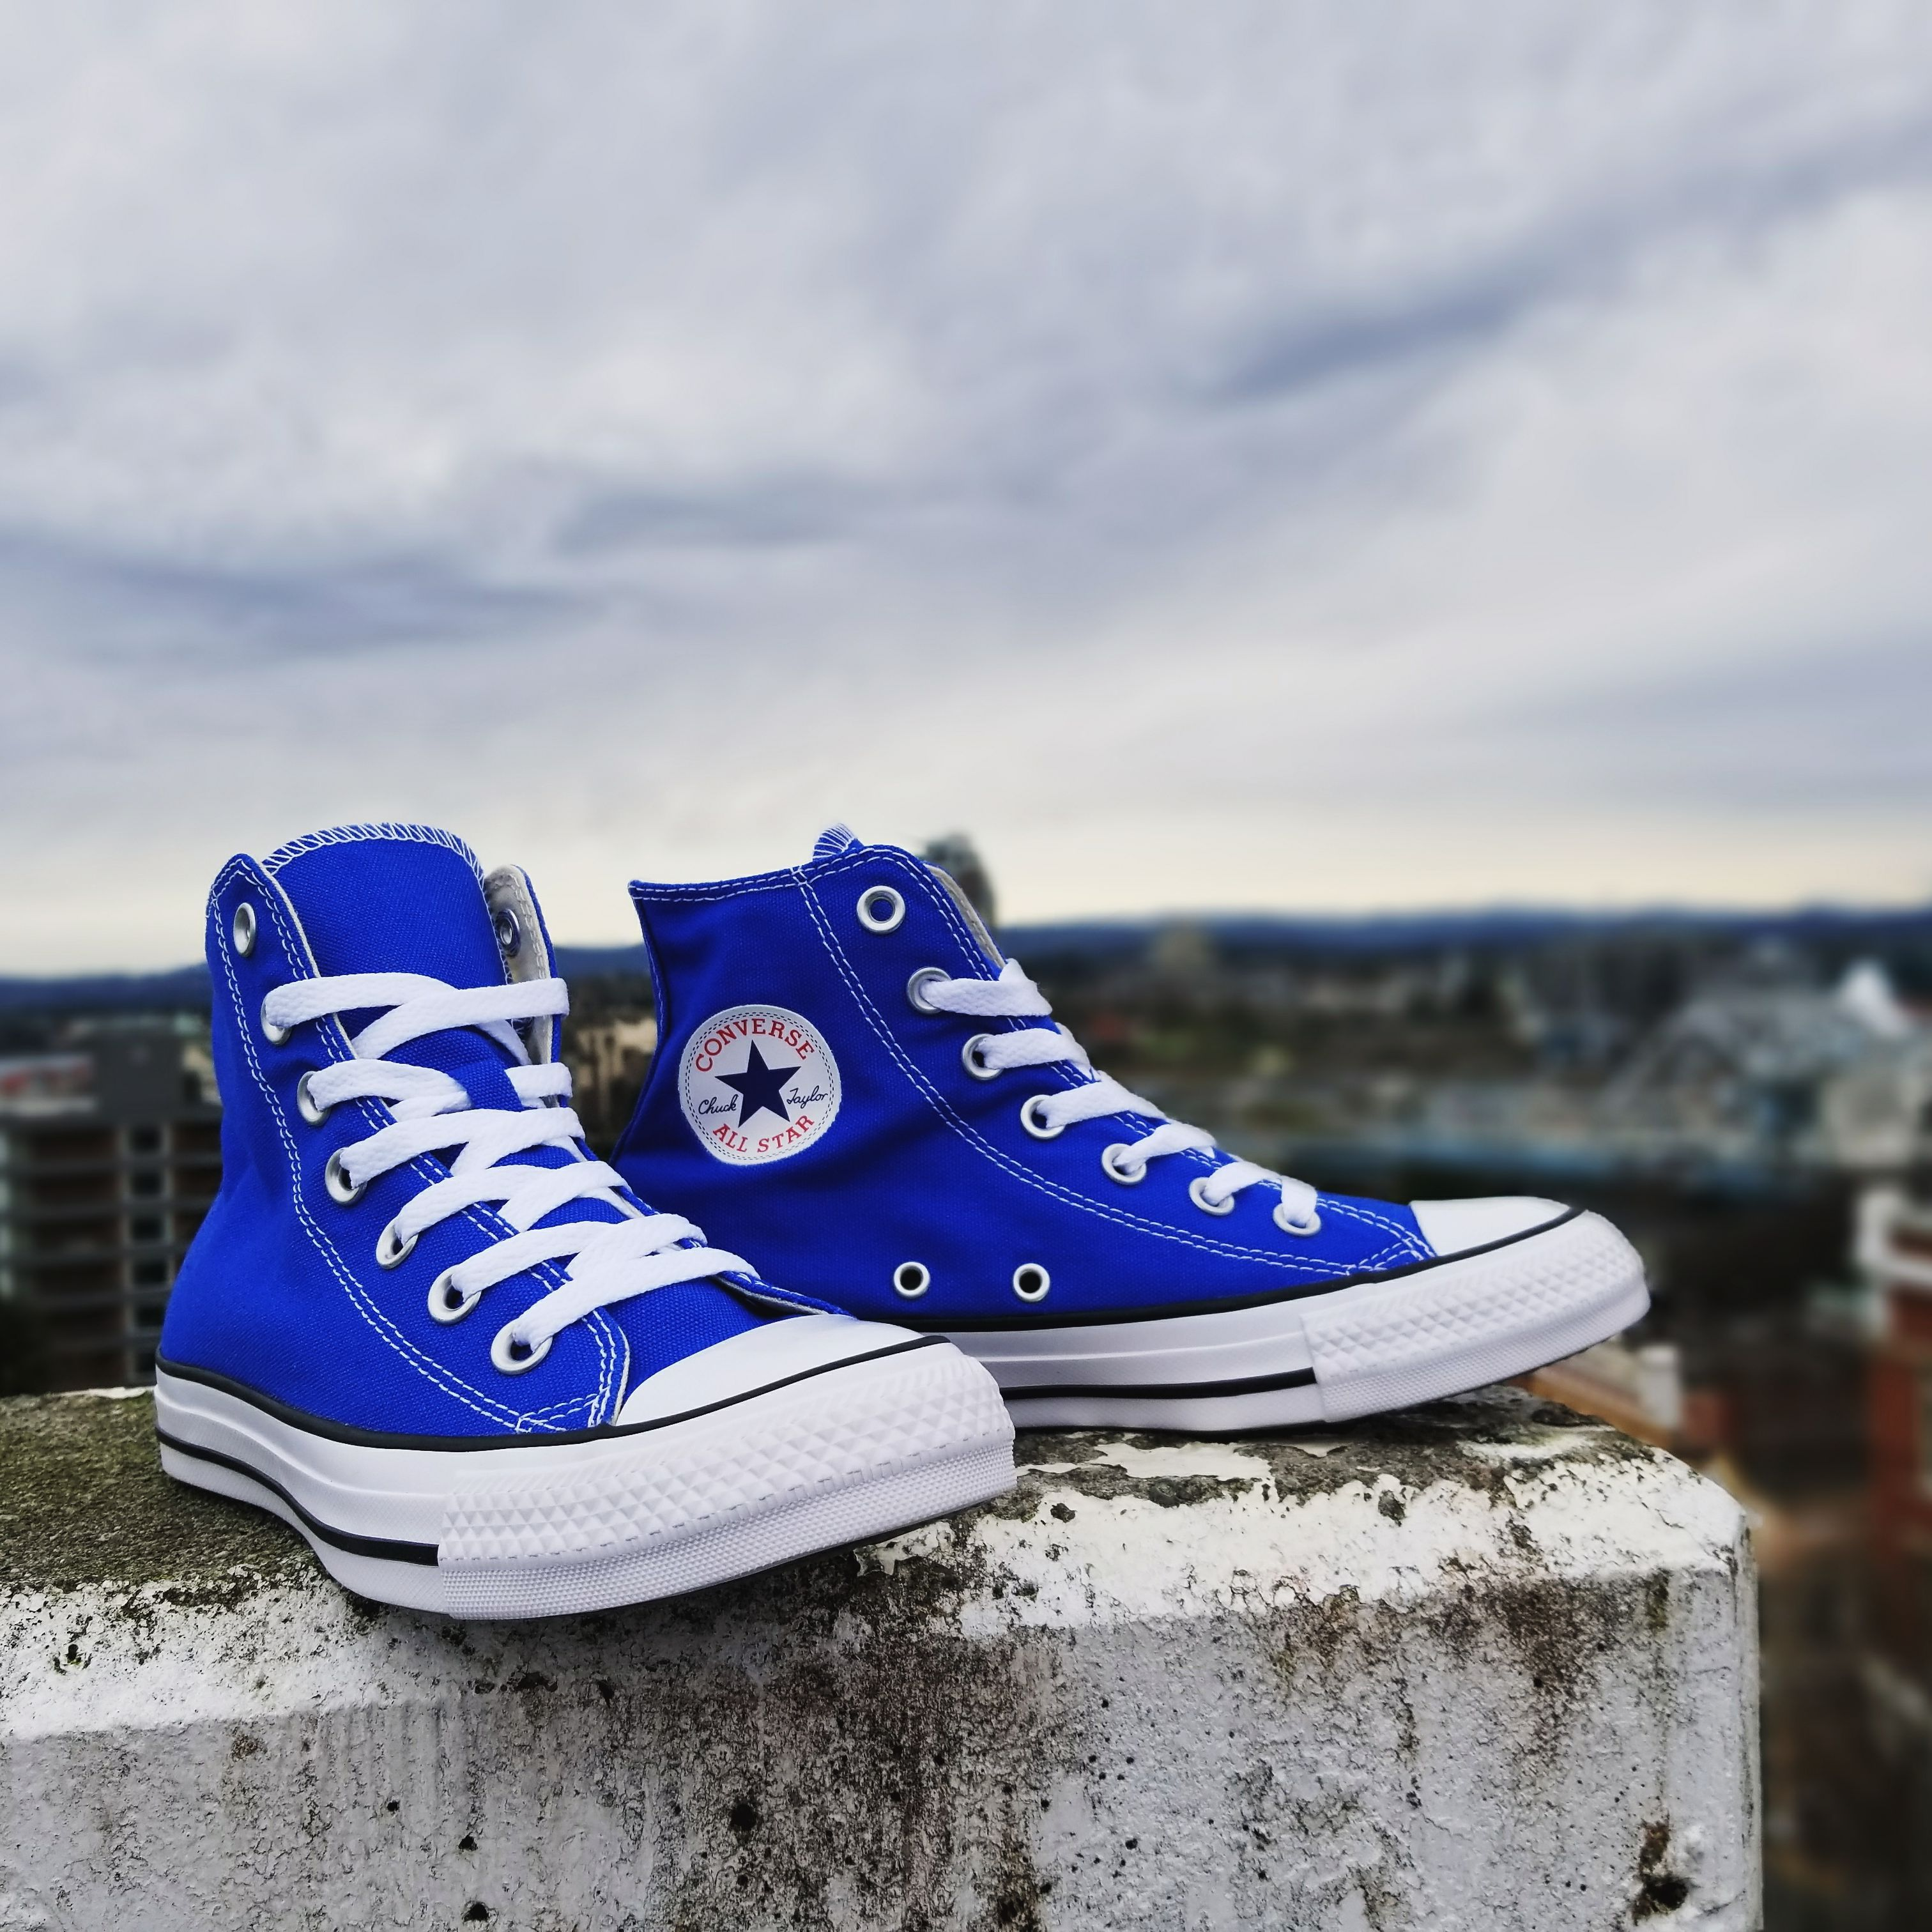 418b1c0fdacd94 These new arrivals from  converse are ready to be the blueprint of your  style. Order now!  bagginsshoes  converse  chucktaylorallstar  conversehigh  ...